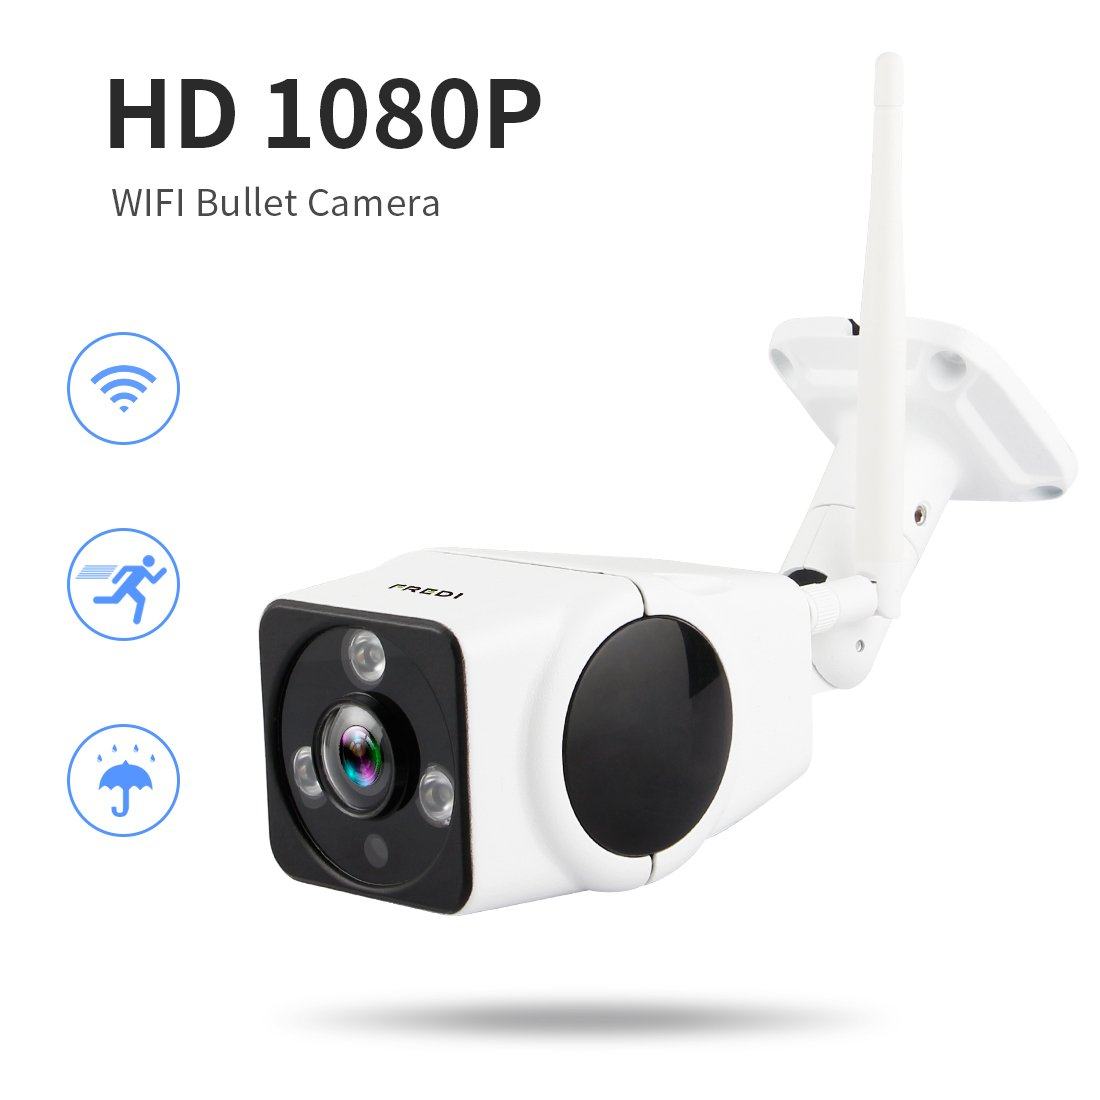 Ip camera fredi hd 1080p wireless home cctv security surveillance ip camera fredi hd 1080p wireless home cctv security surveillance outdoor wifi bullet waterproof camera with night vision motion detection vr901 publicscrutiny Images